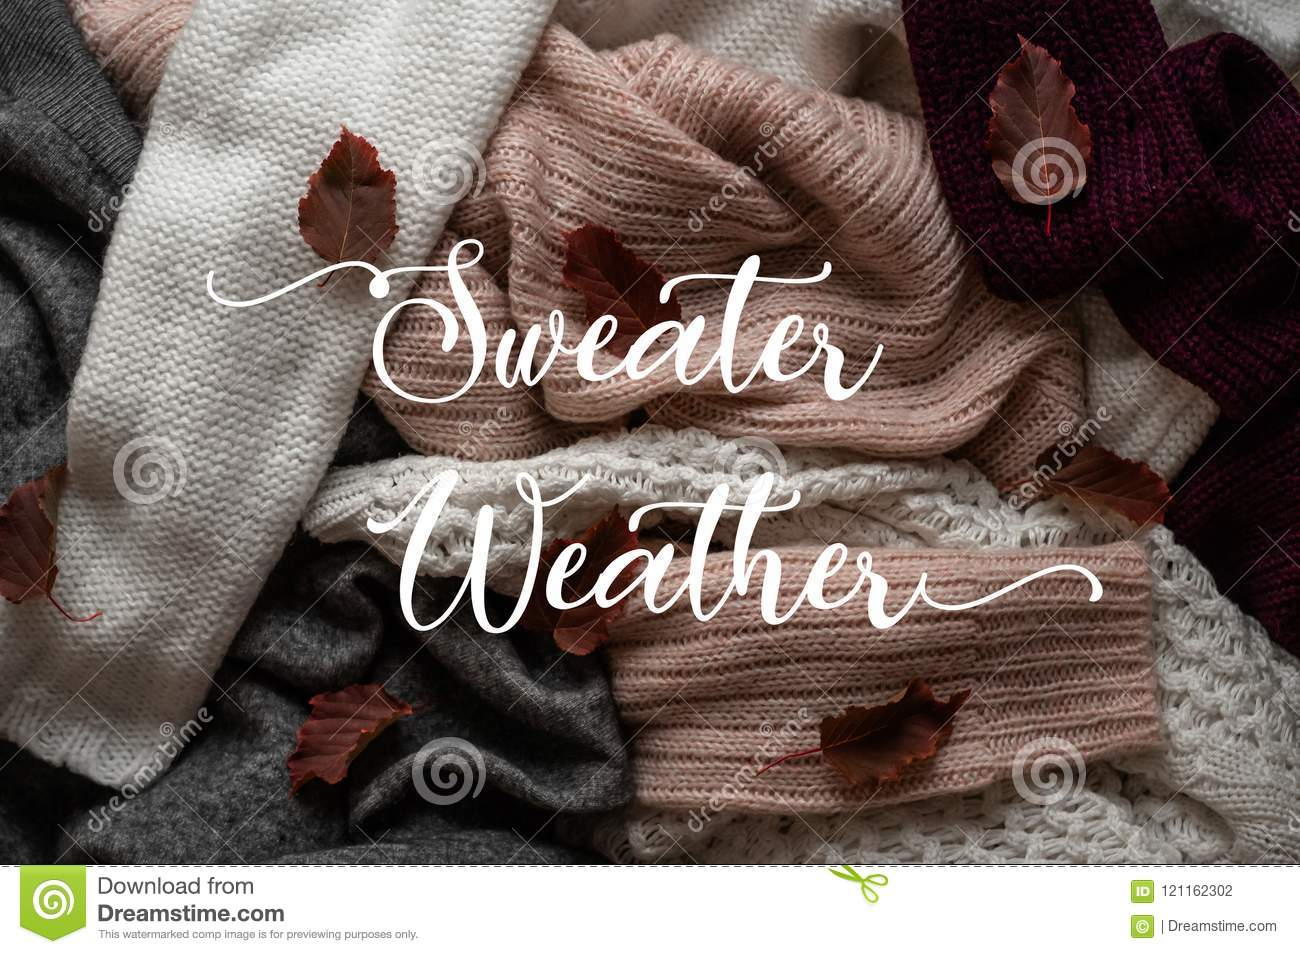 ad09466f73 Background with warm sweaters and the inscription SWEATER WEATHER. Pile of knitted  clothes with autumn leaves